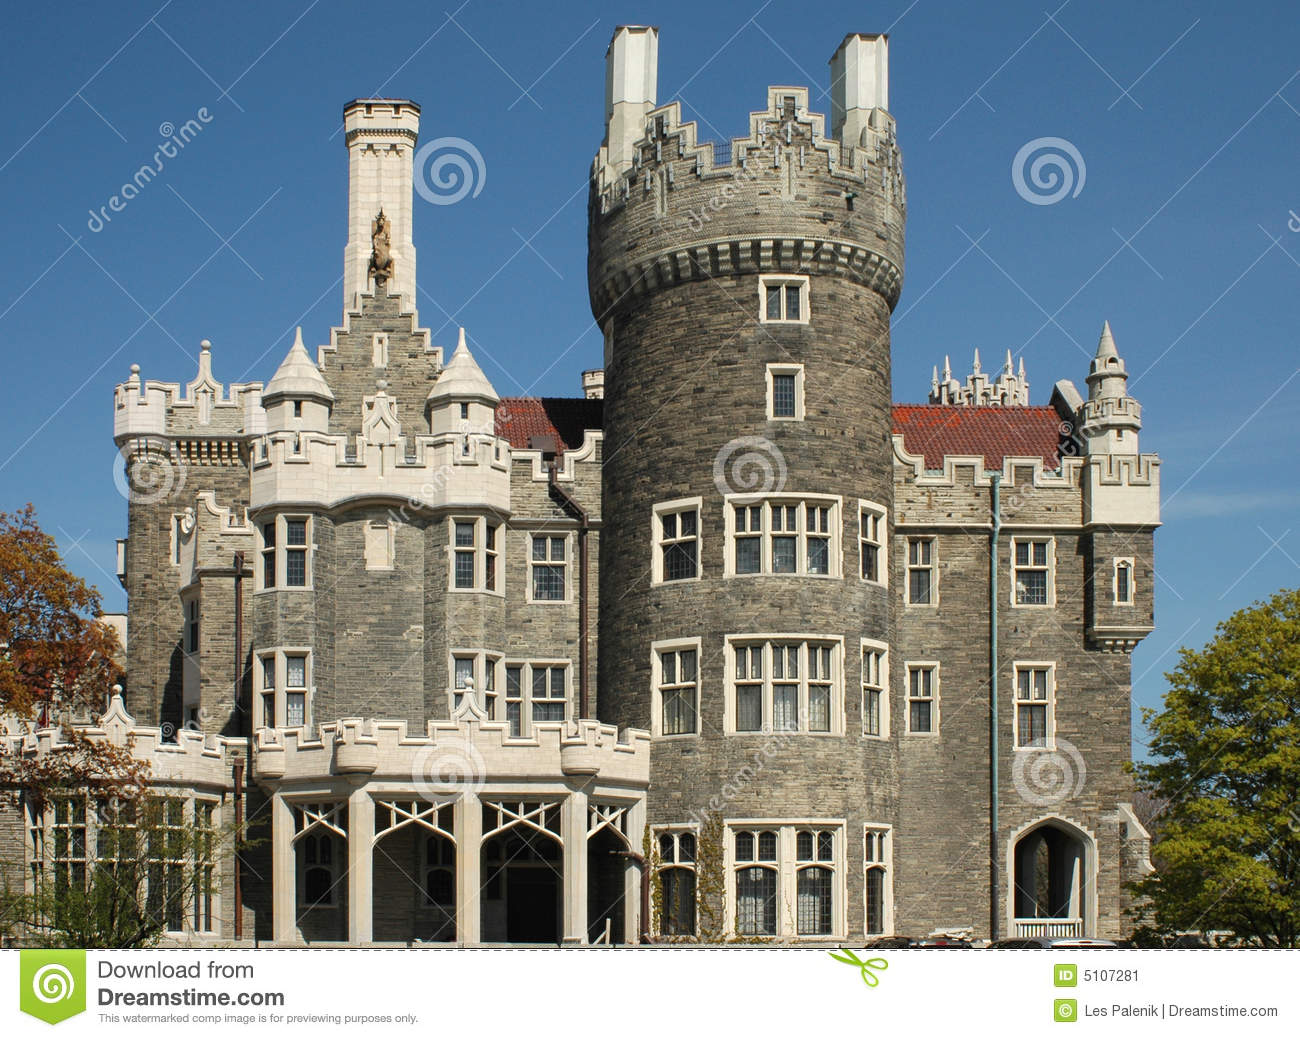 Casa loma castle in toronto stock image image 5107281 for Casa loma mansion toronto